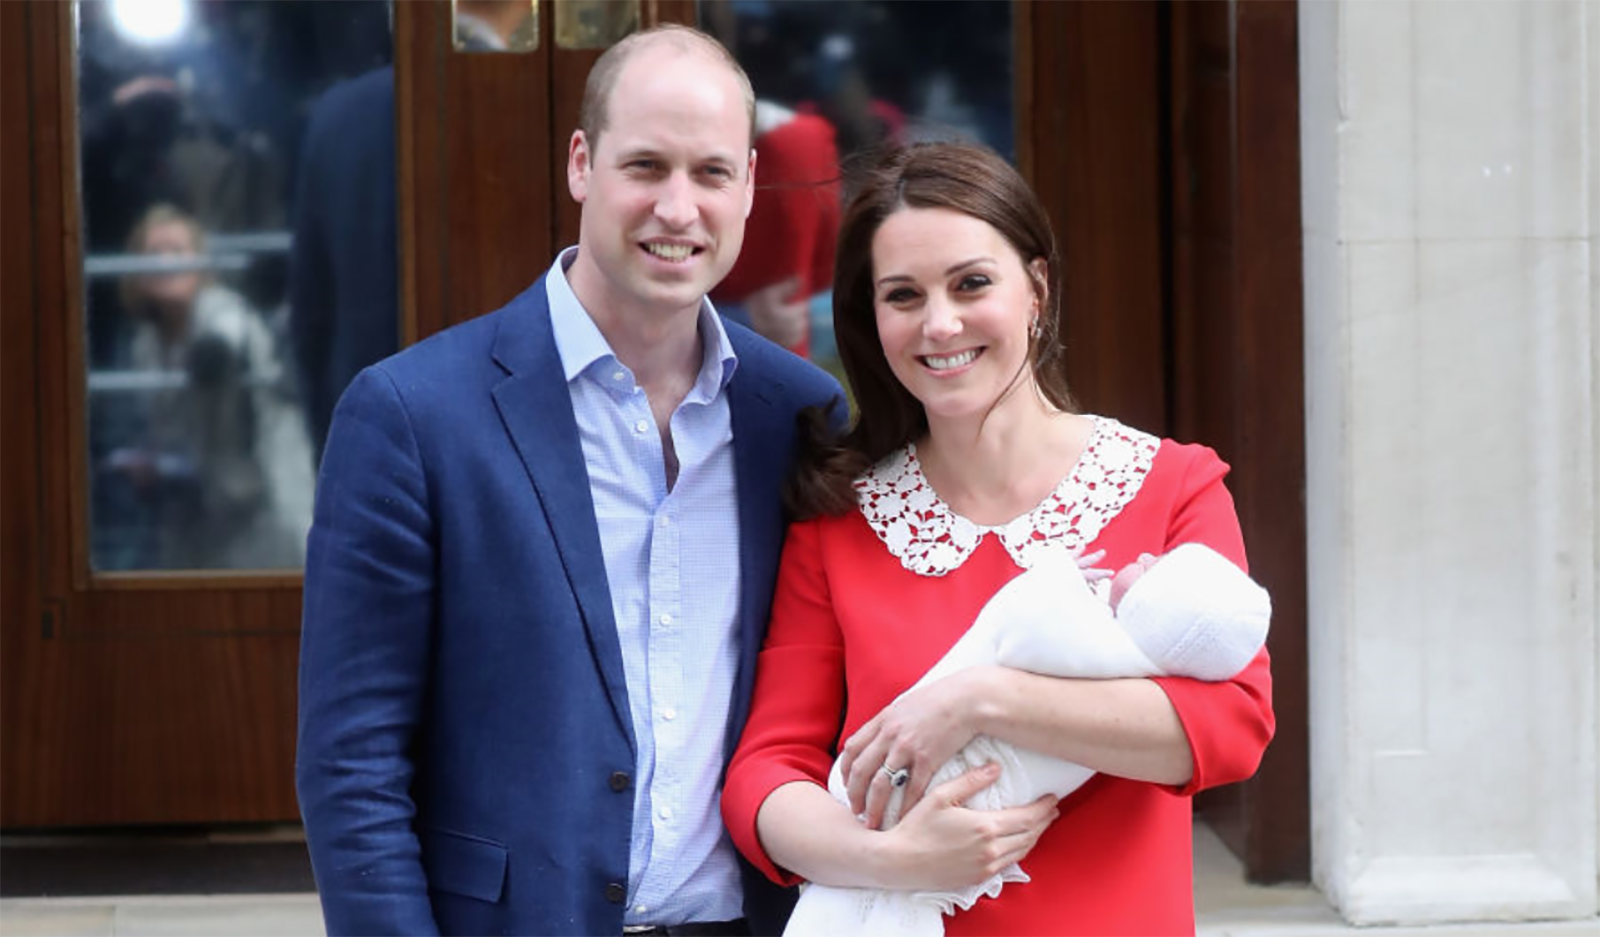 Kate Middleton Wears Red Dress For Her First Appearance With Baby No. 3